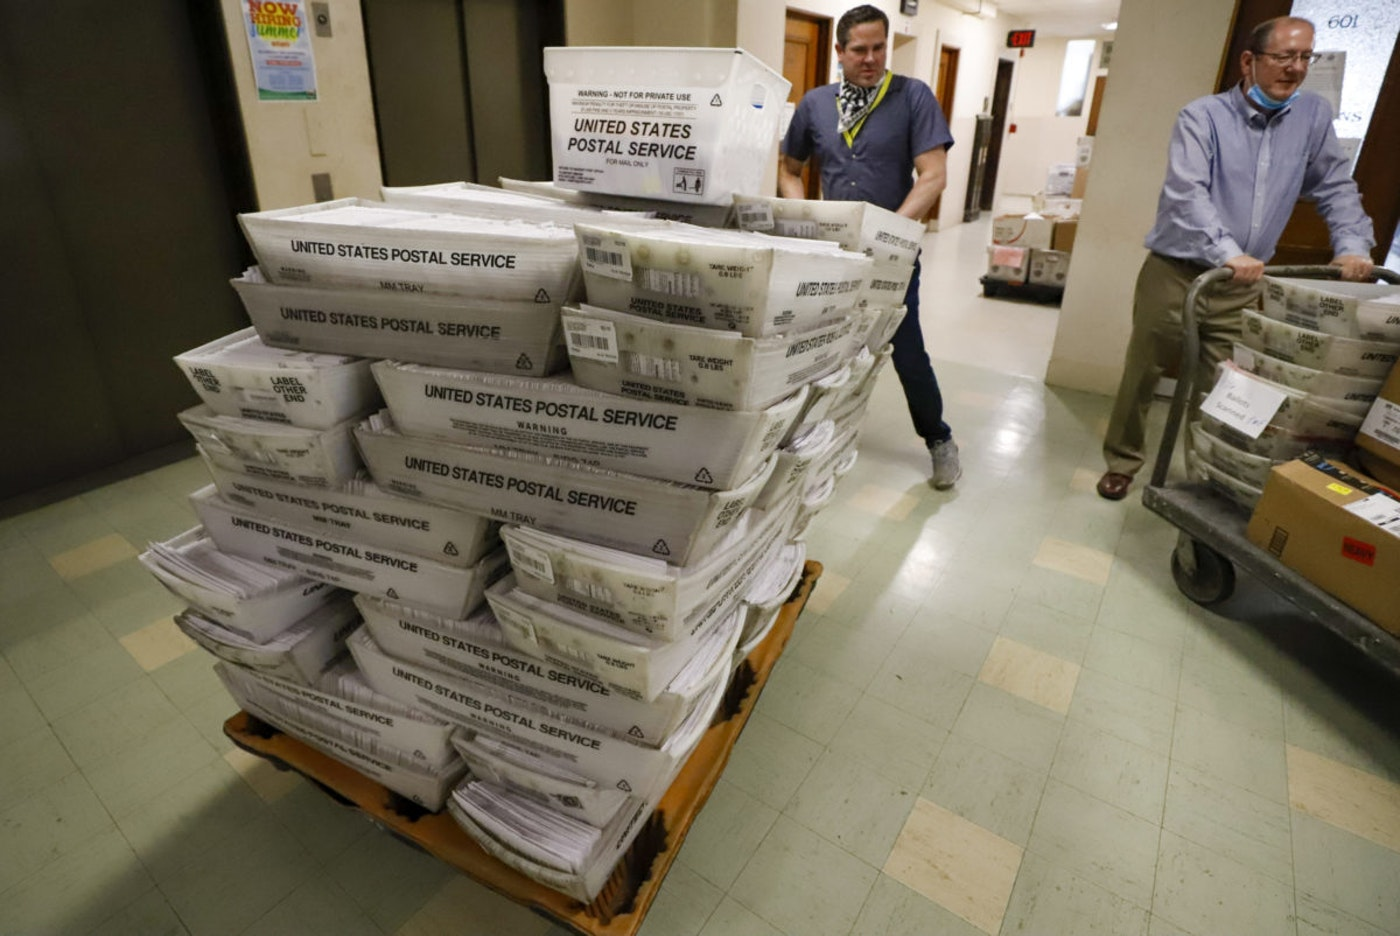 Chet Harhut, left, deputy manager, and David Voye, right, division manager of the Allegheny County Division of Elections, take receipt of a dolly loaded with mail-in ballots, at the division of elections offices in downtown Pittsburgh Wednesday, May 27, 2020. The June 2 Pennsylvania primary was a first run for some new paper-record voting systems and the inaugural use of newly legalized mail-in ballots. (AP Photo/Gene J. Puskar)